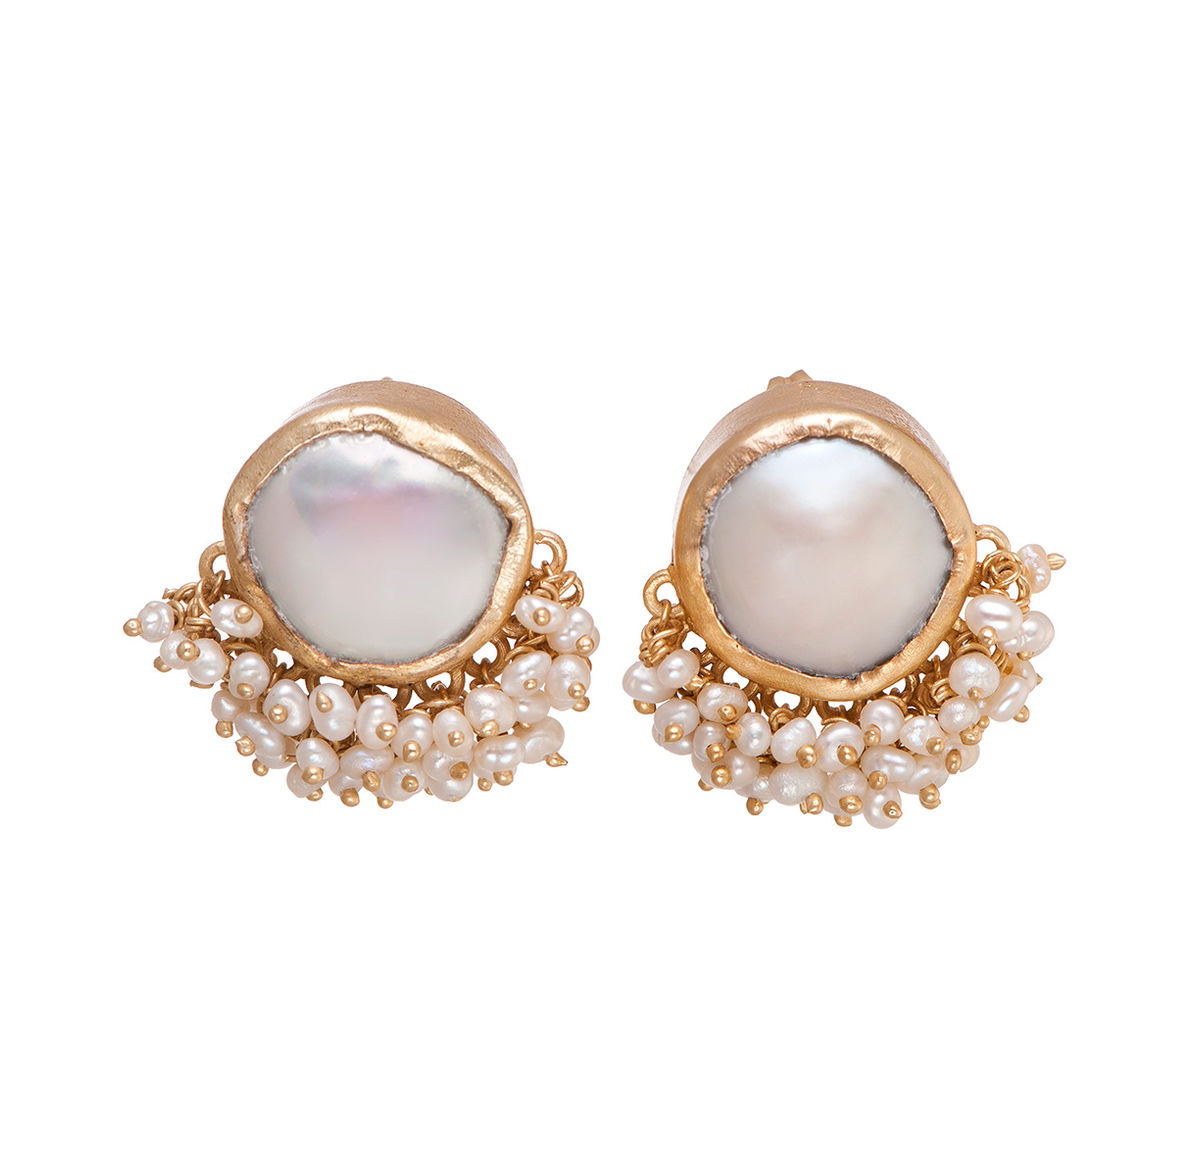 earring drops by kind com jewellery earrings shop baroque women us annoushka fine pearl for stud gold classic